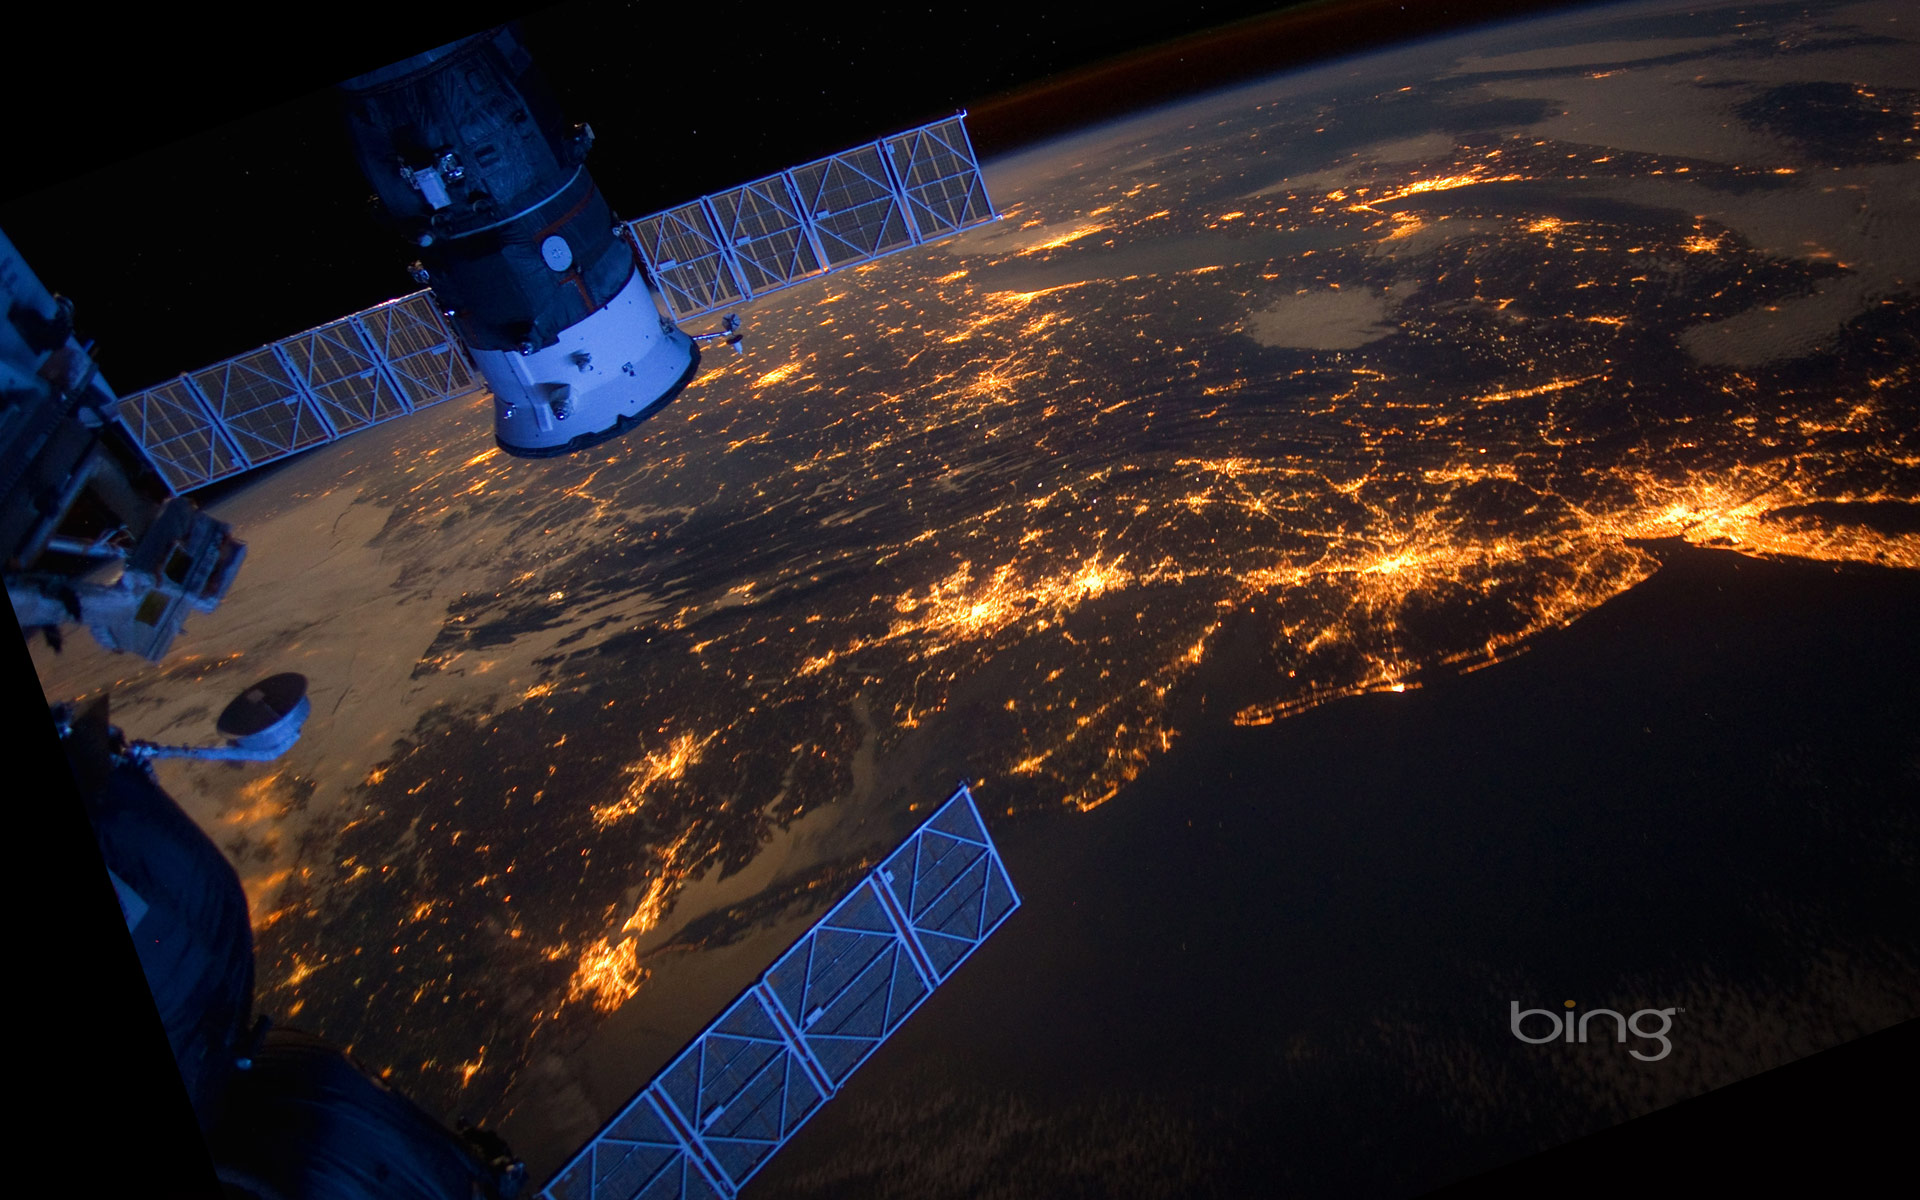 East Coast of the United States as seen from the International Space Station